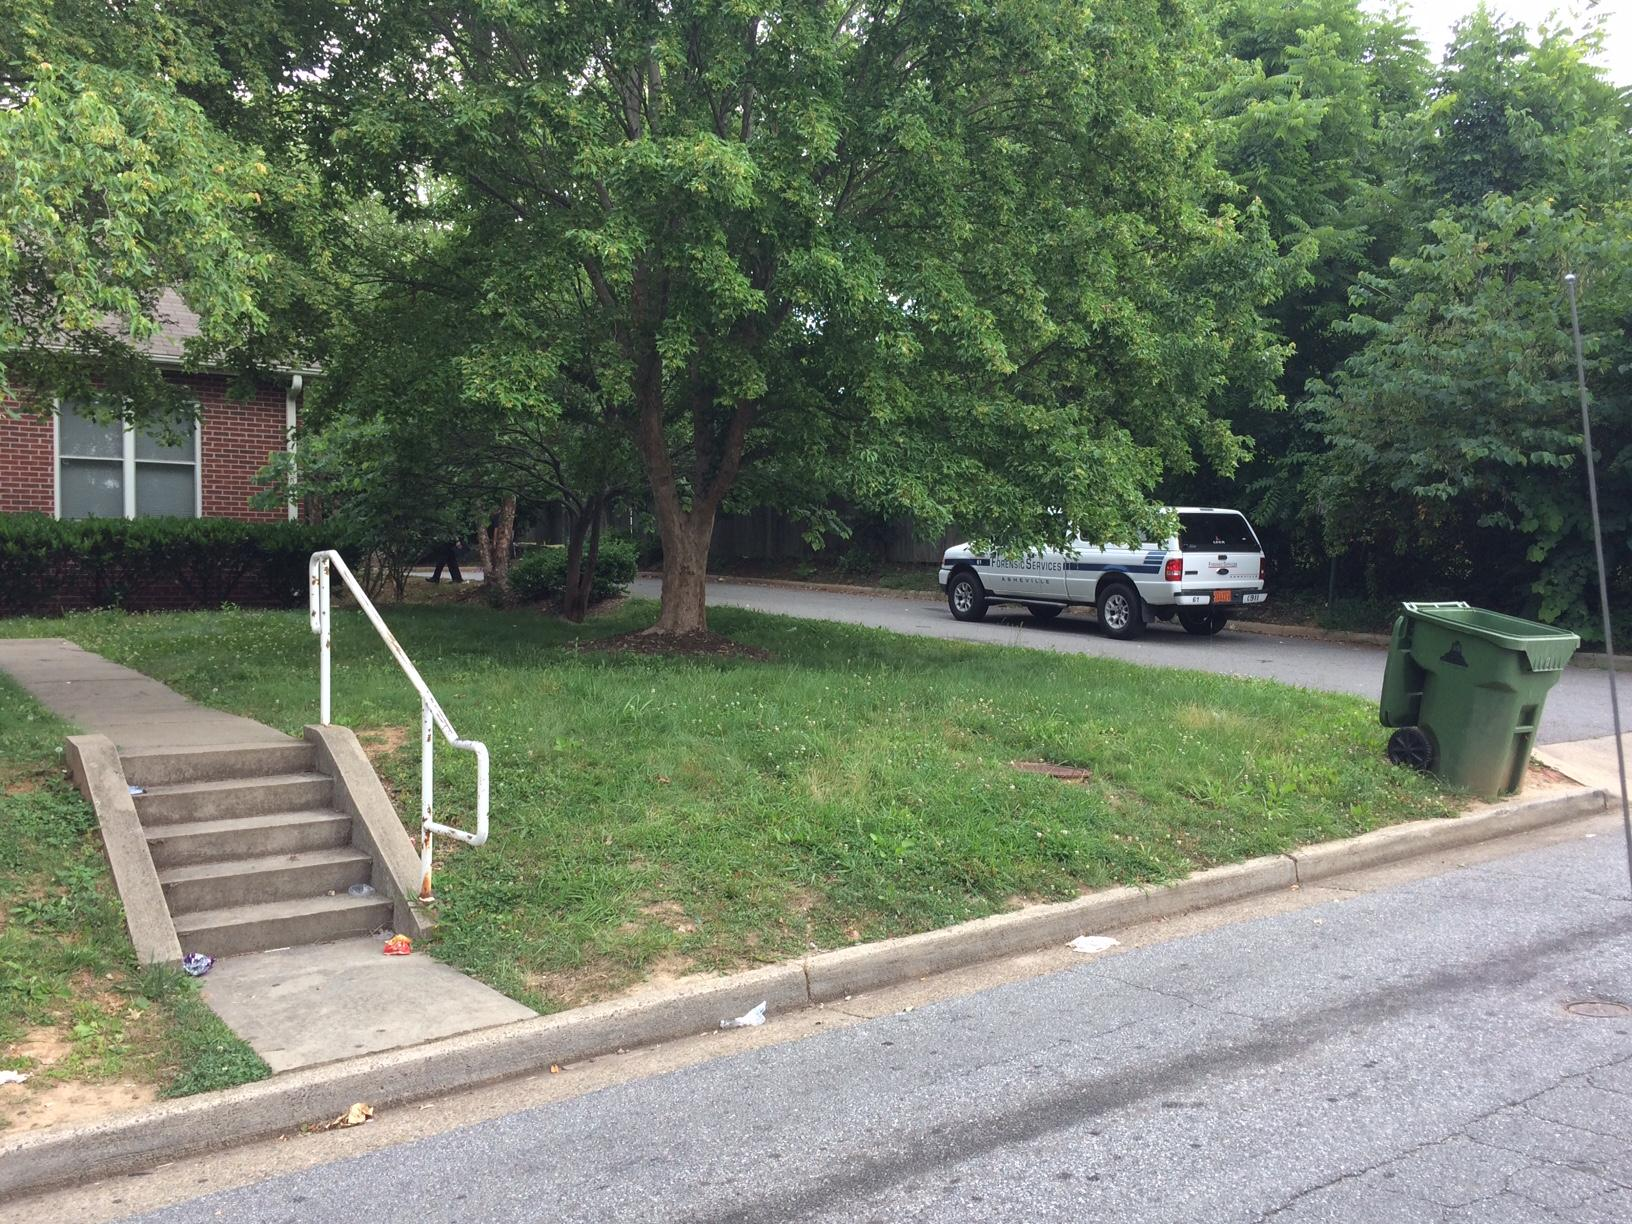 Asheville police responded to a report of shots fired in the Shiloh area about just before 2 p.m. Thursday. Not long after, a person went to Mission Hospital with a gunshot wound. (Photo credit: WLOS staff)